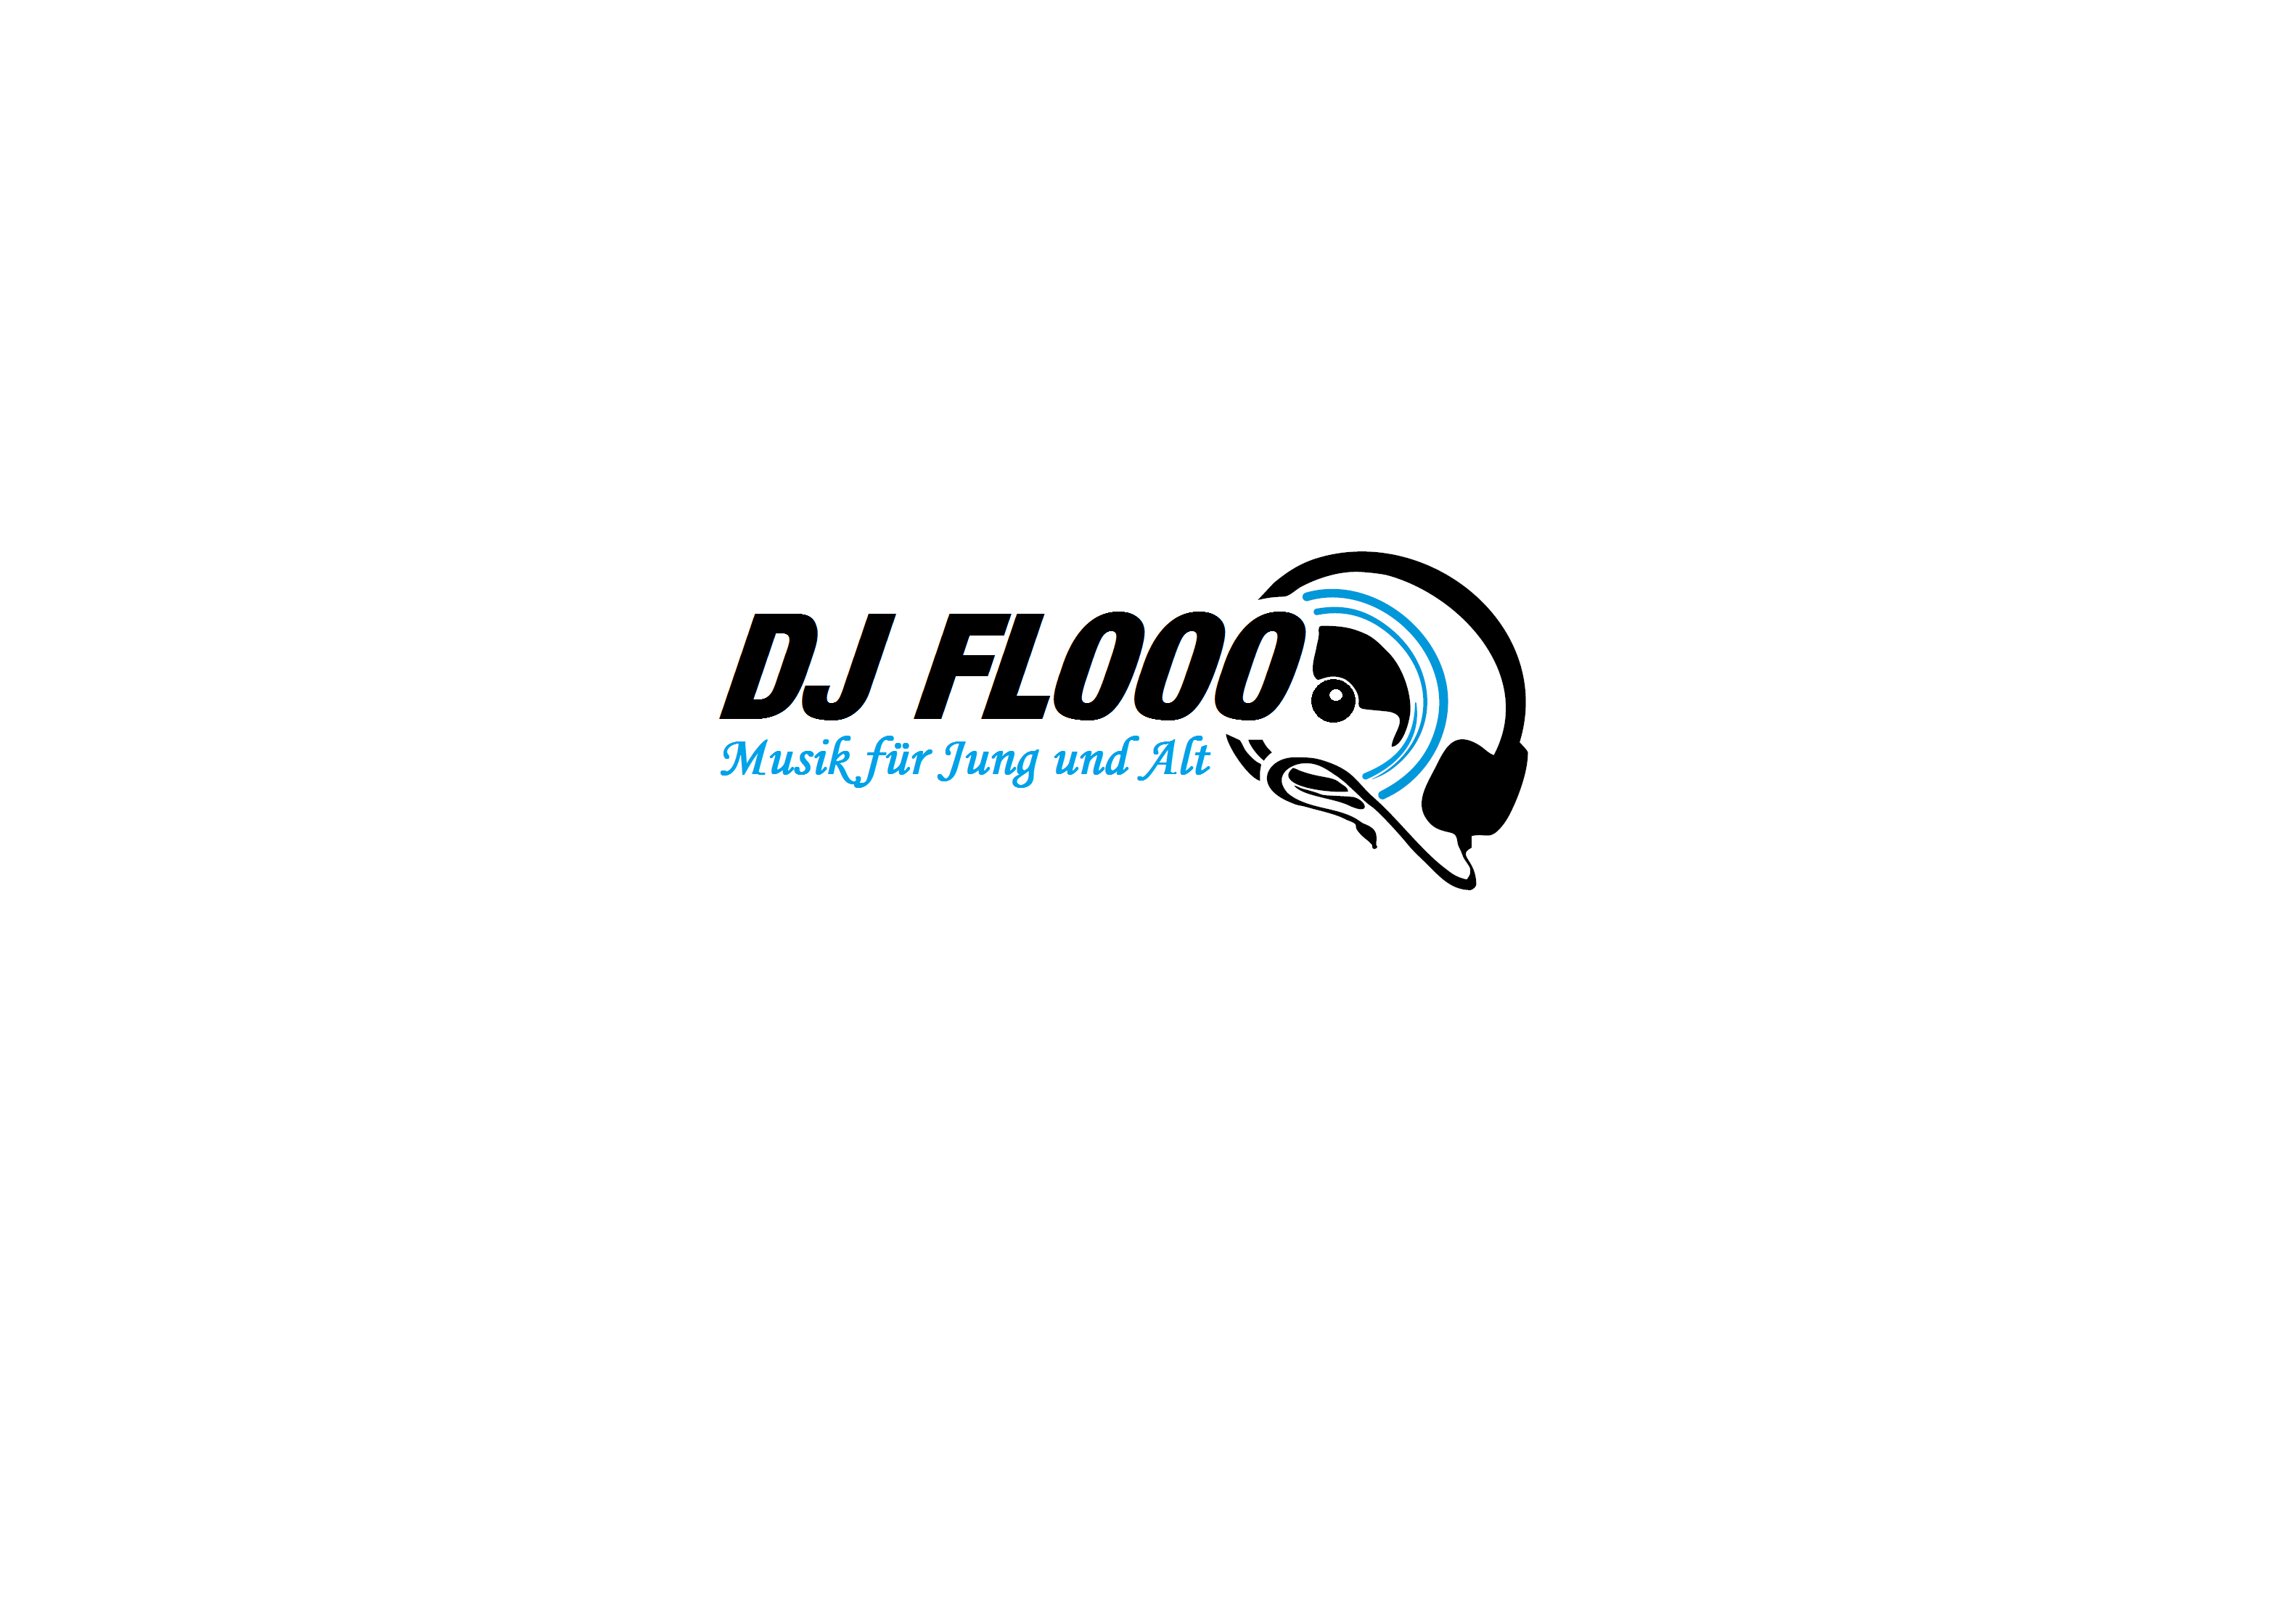 Kontakt dj flooo musik f r jung und alt for Area 604